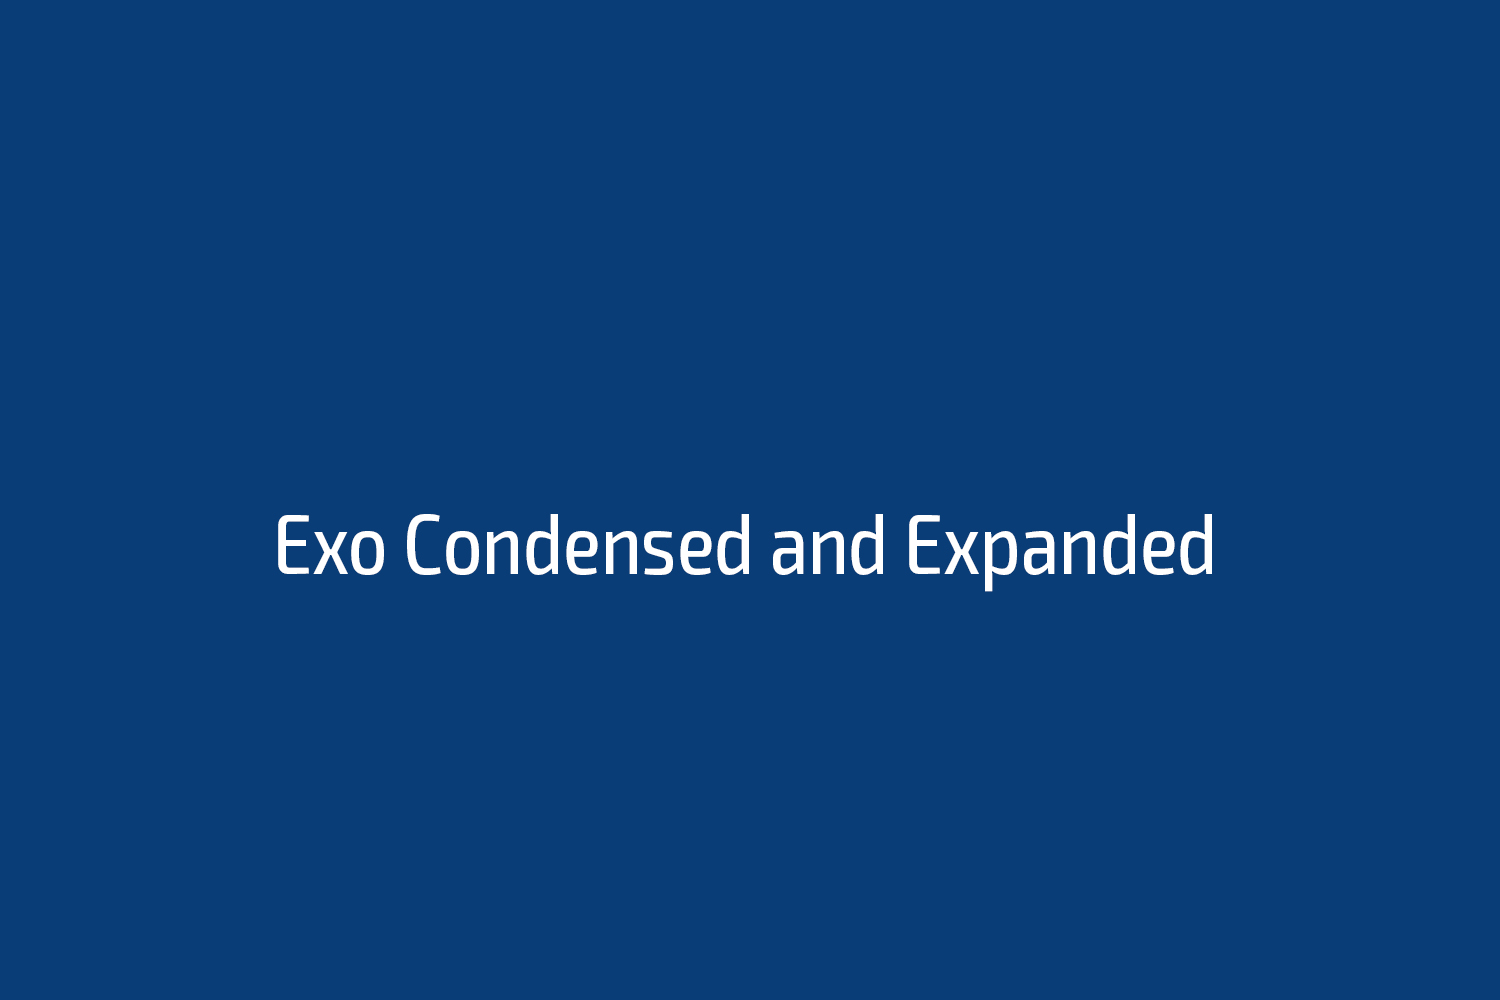 Exo Condensed and Expanded